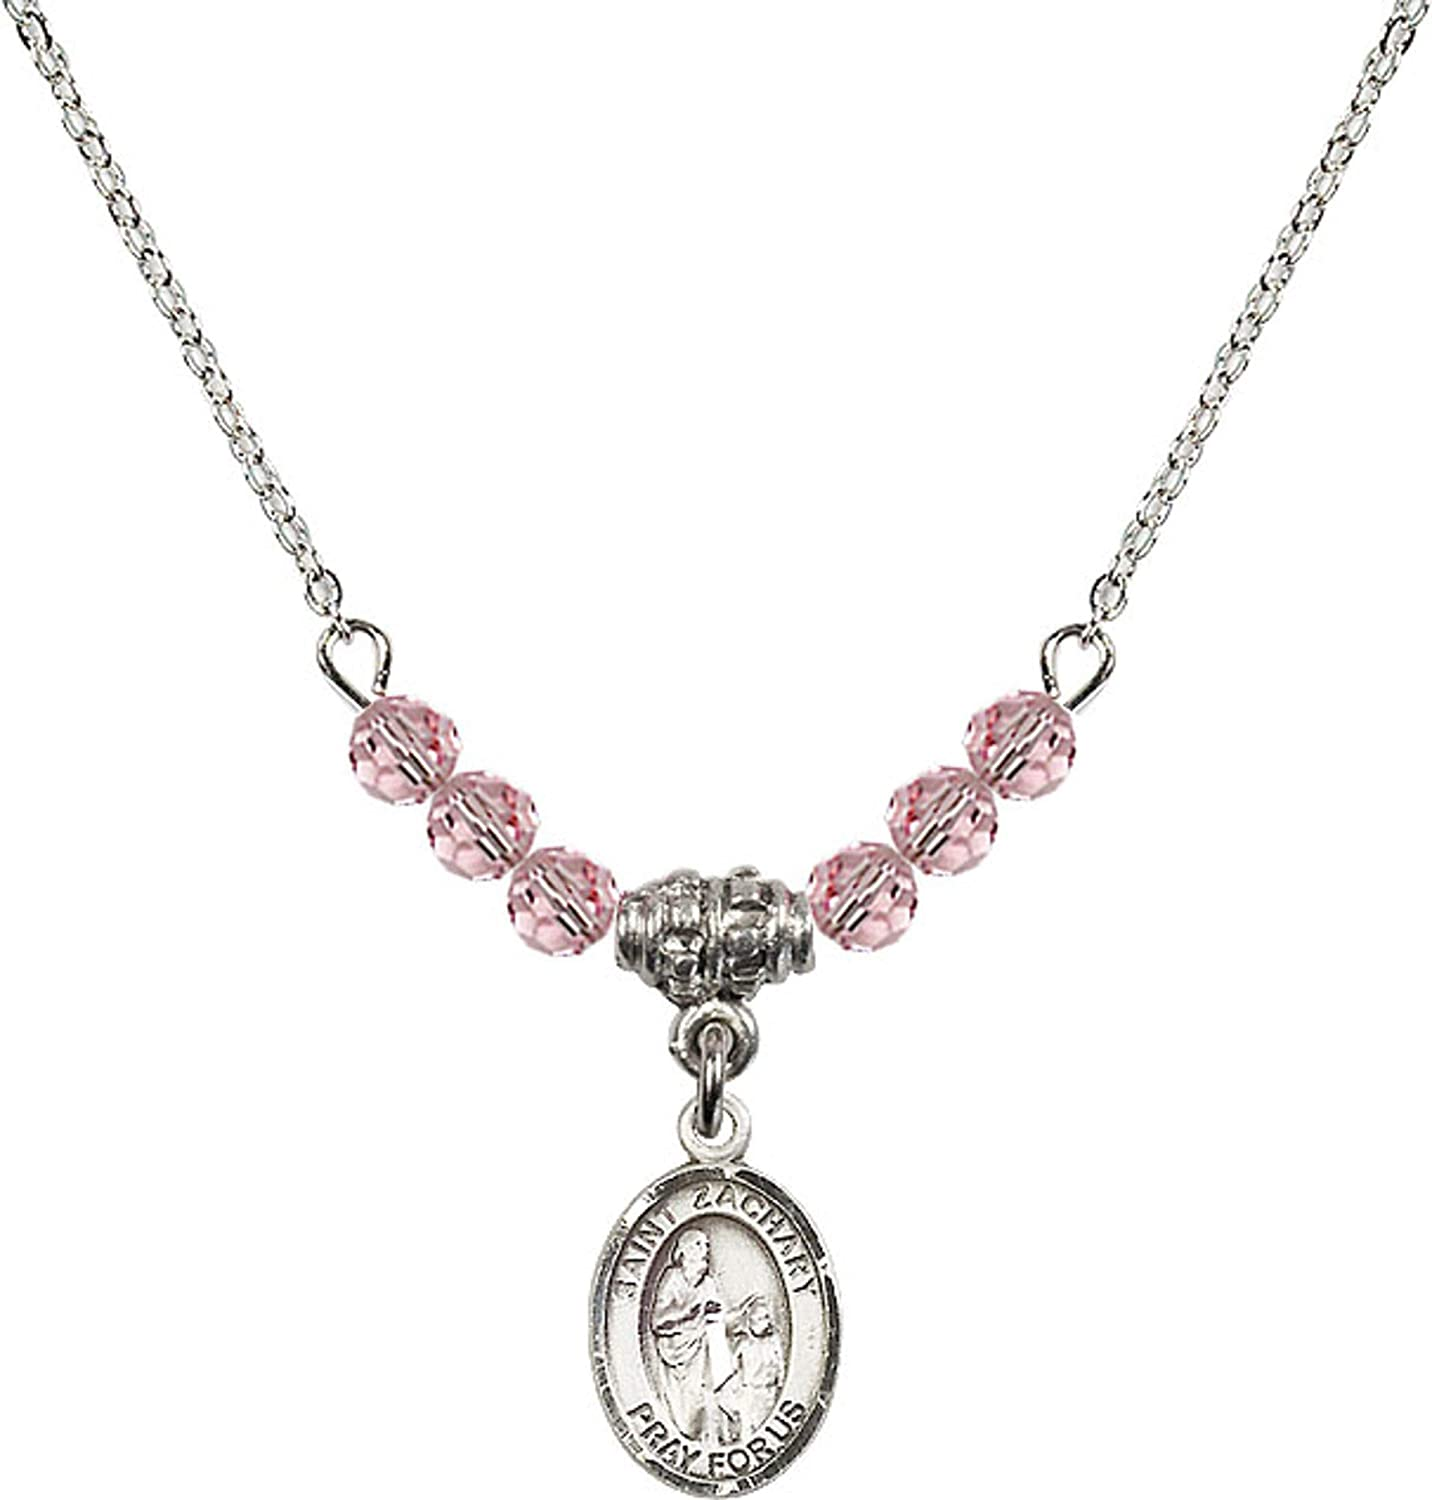 Bonyak Jewelry 18 Inch Rhodium Plated Necklace w// 4mm Light Rose Pink October Birth Month Stone Beads and Saint Zachary Charm